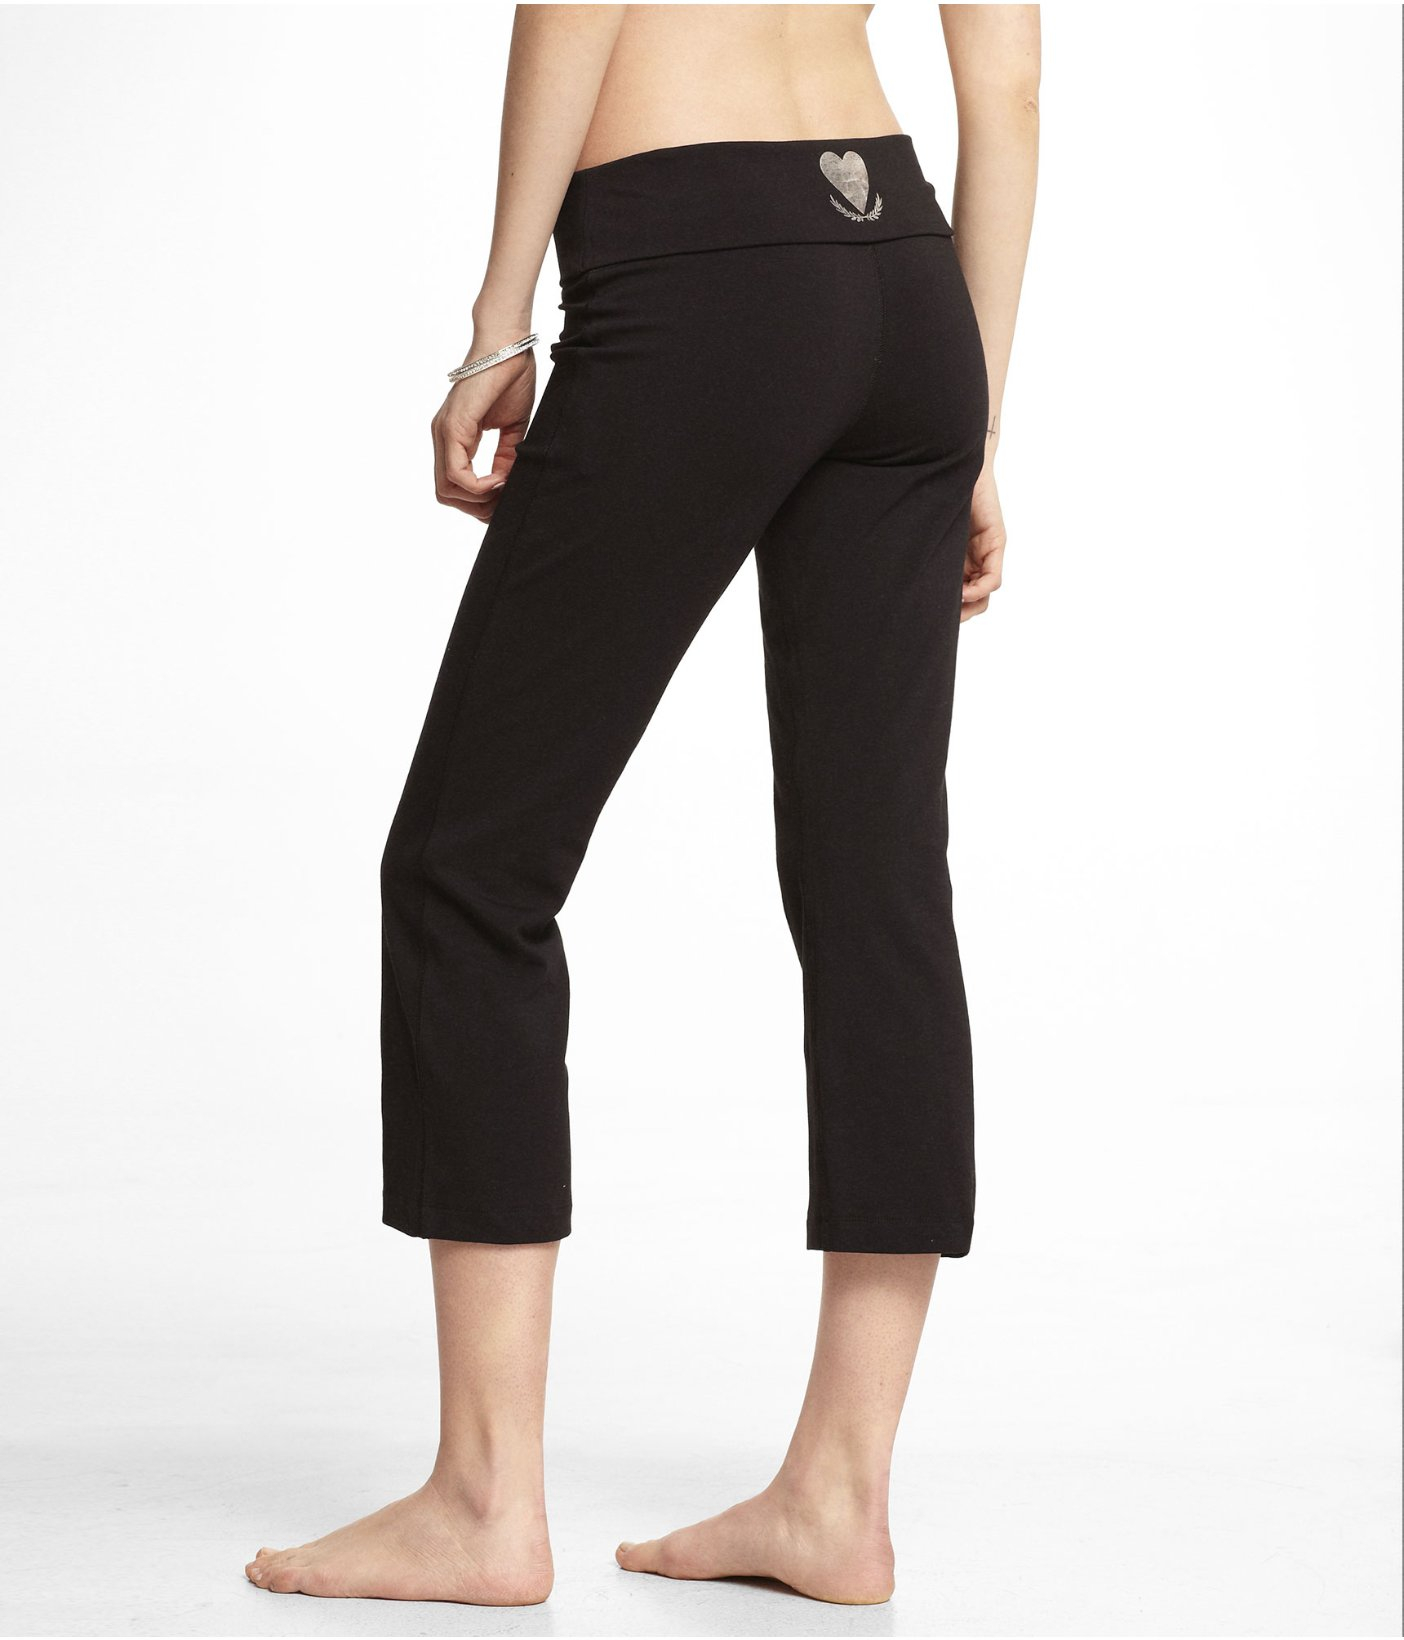 Express Love Yoga Foldover Cropped Pant In Black (PITCH